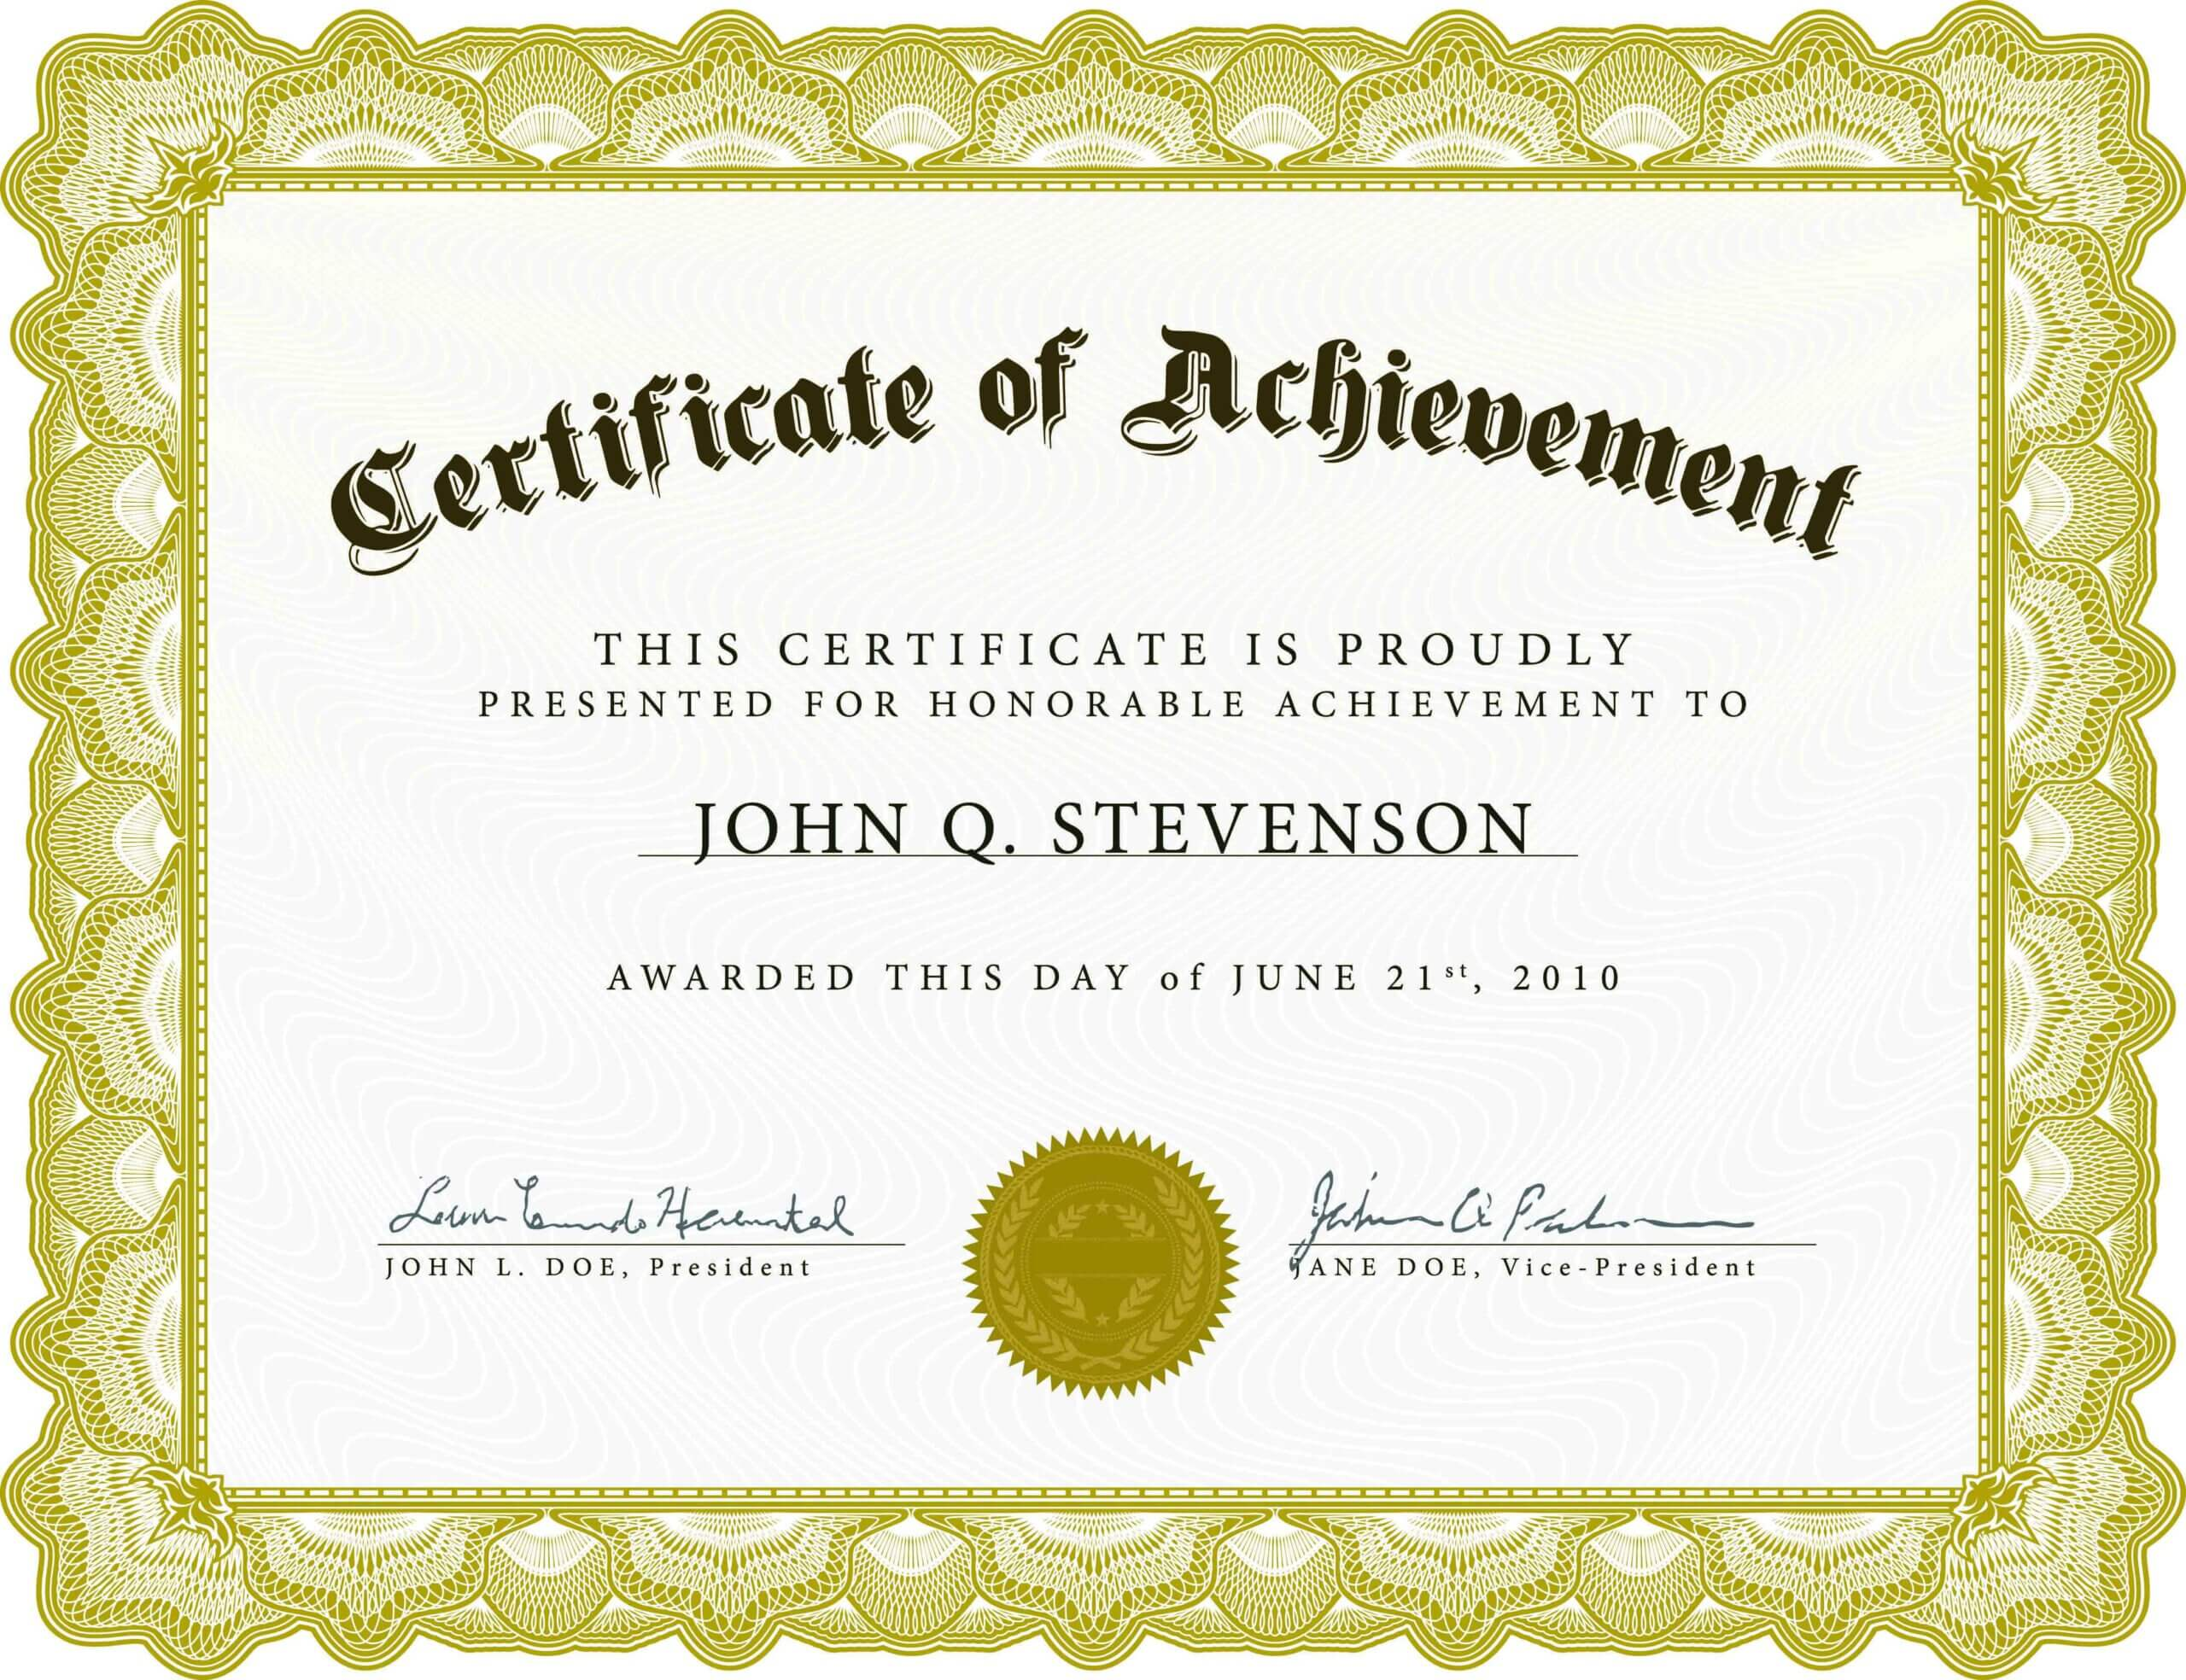 Certificate Of Academic Achievement Template | Photo Stock Regarding Certificate Of Excellence Template Free Download